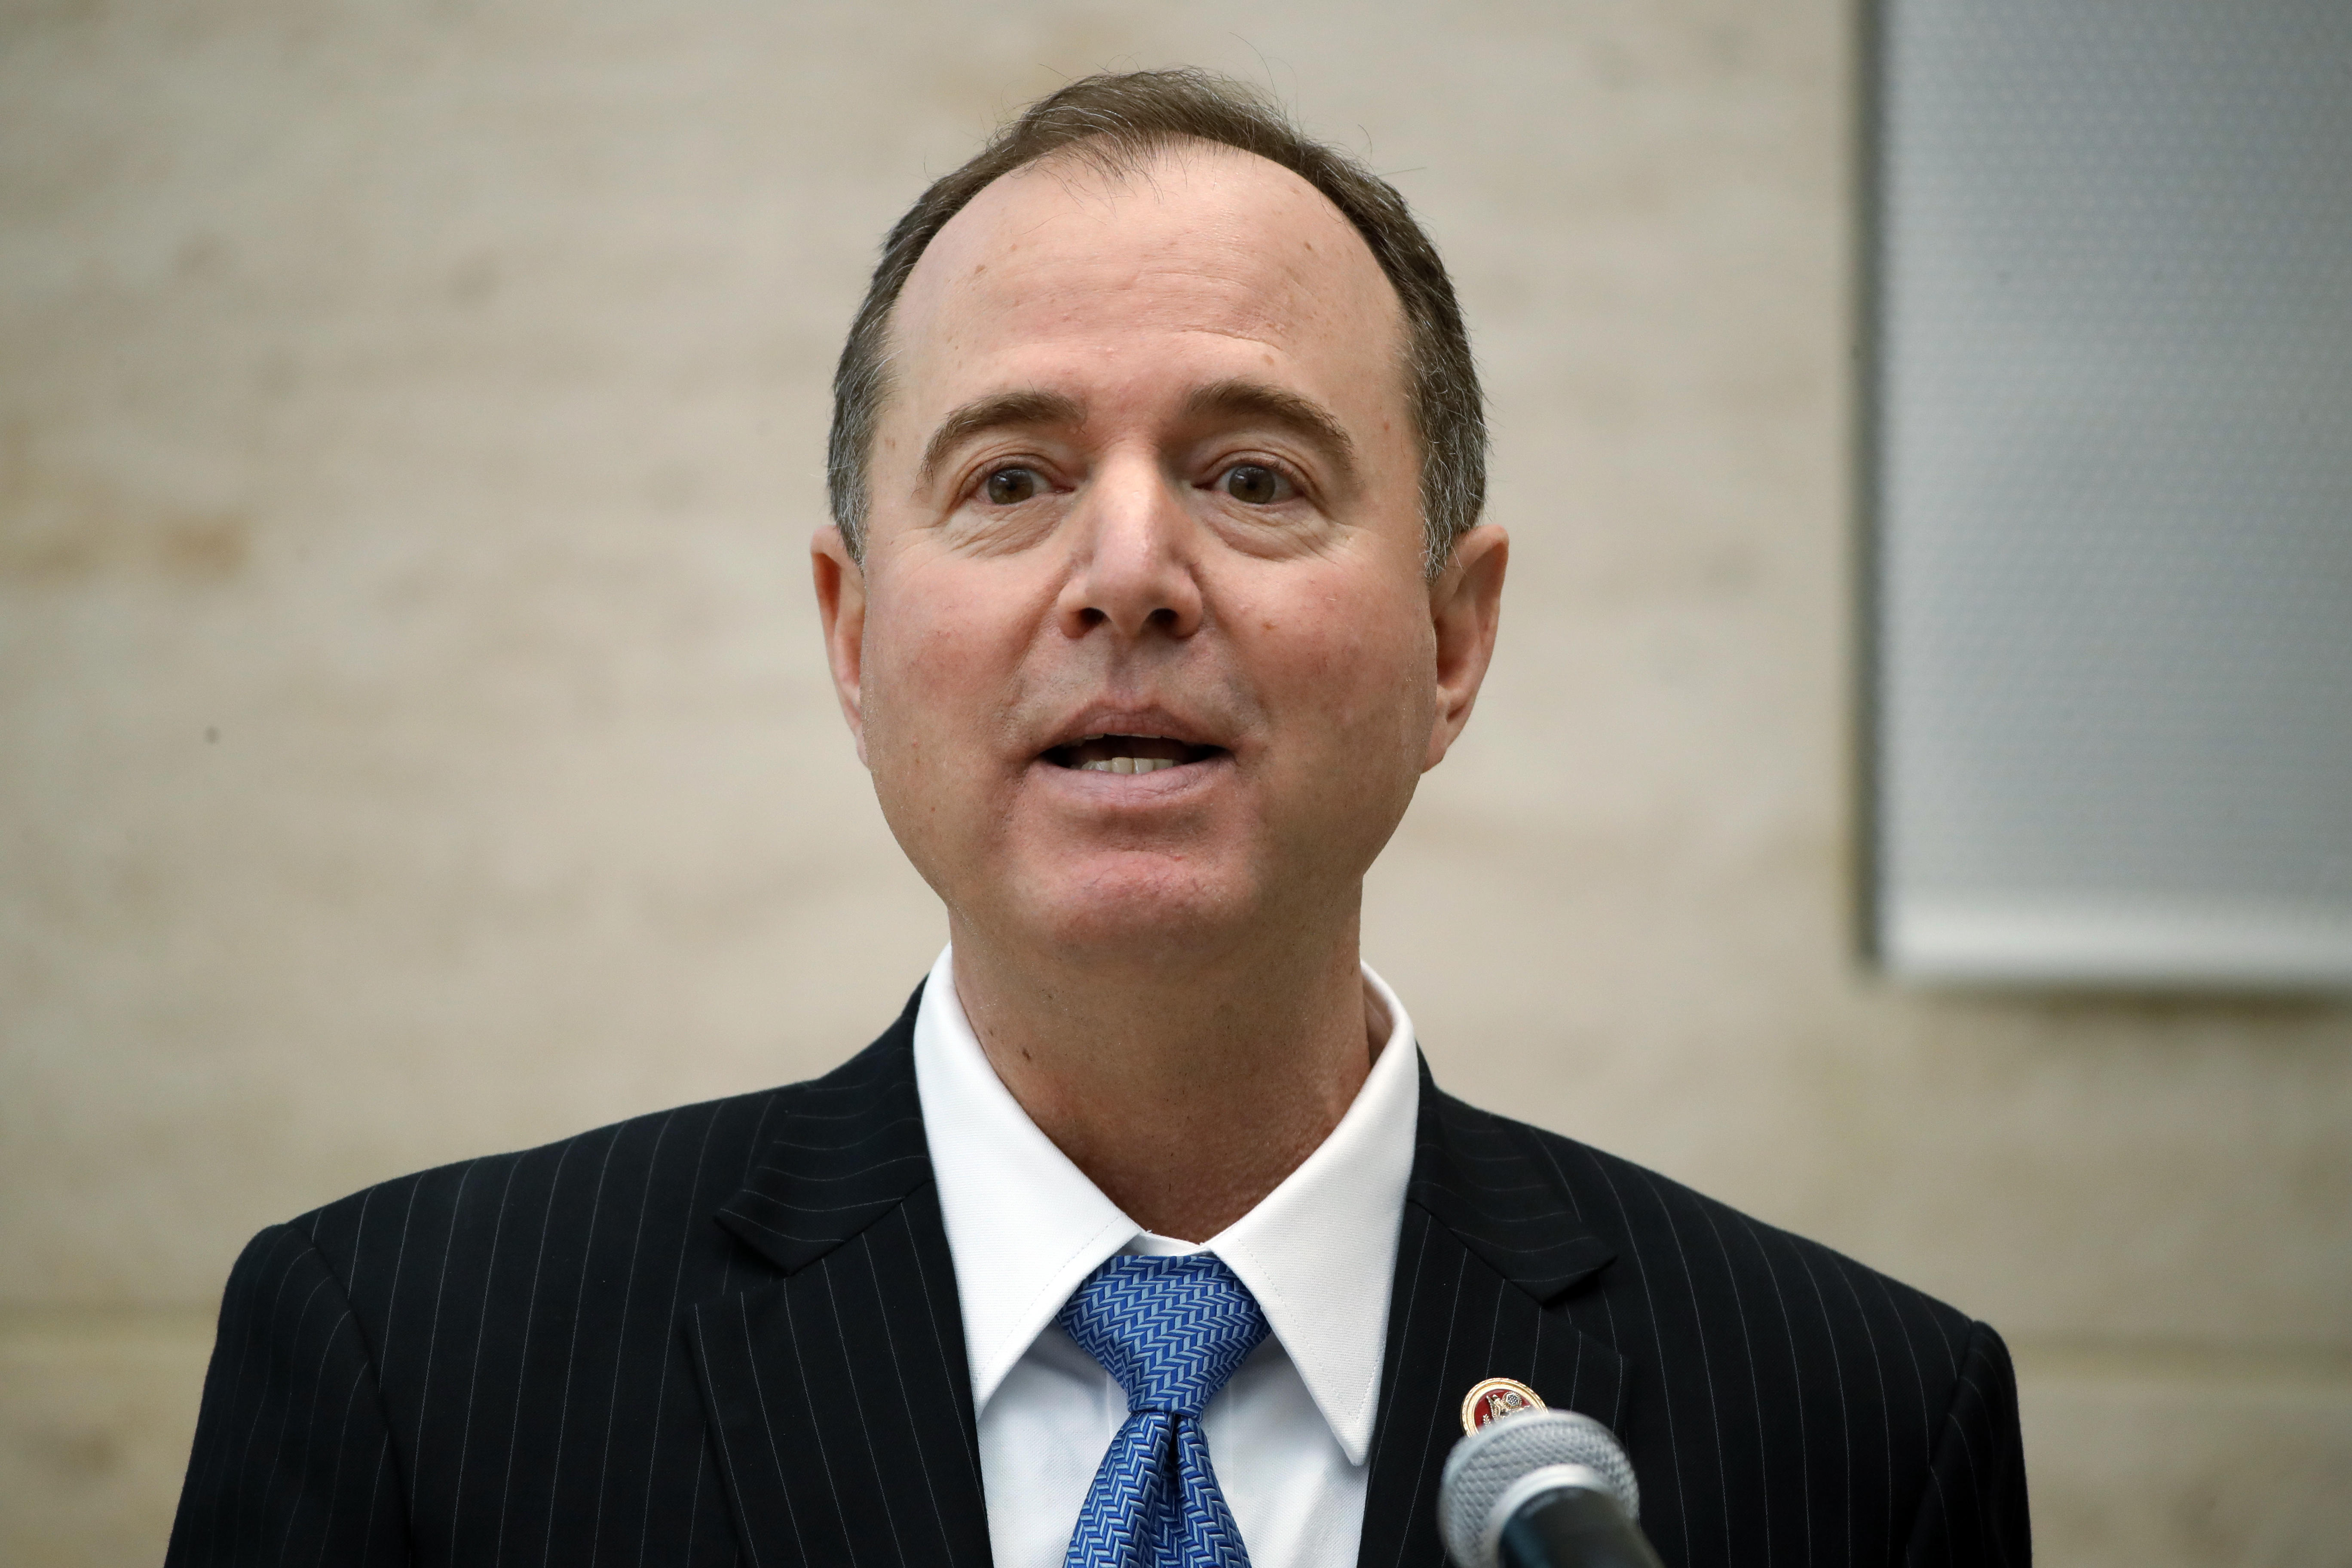 Democratic intelligence memo to be released